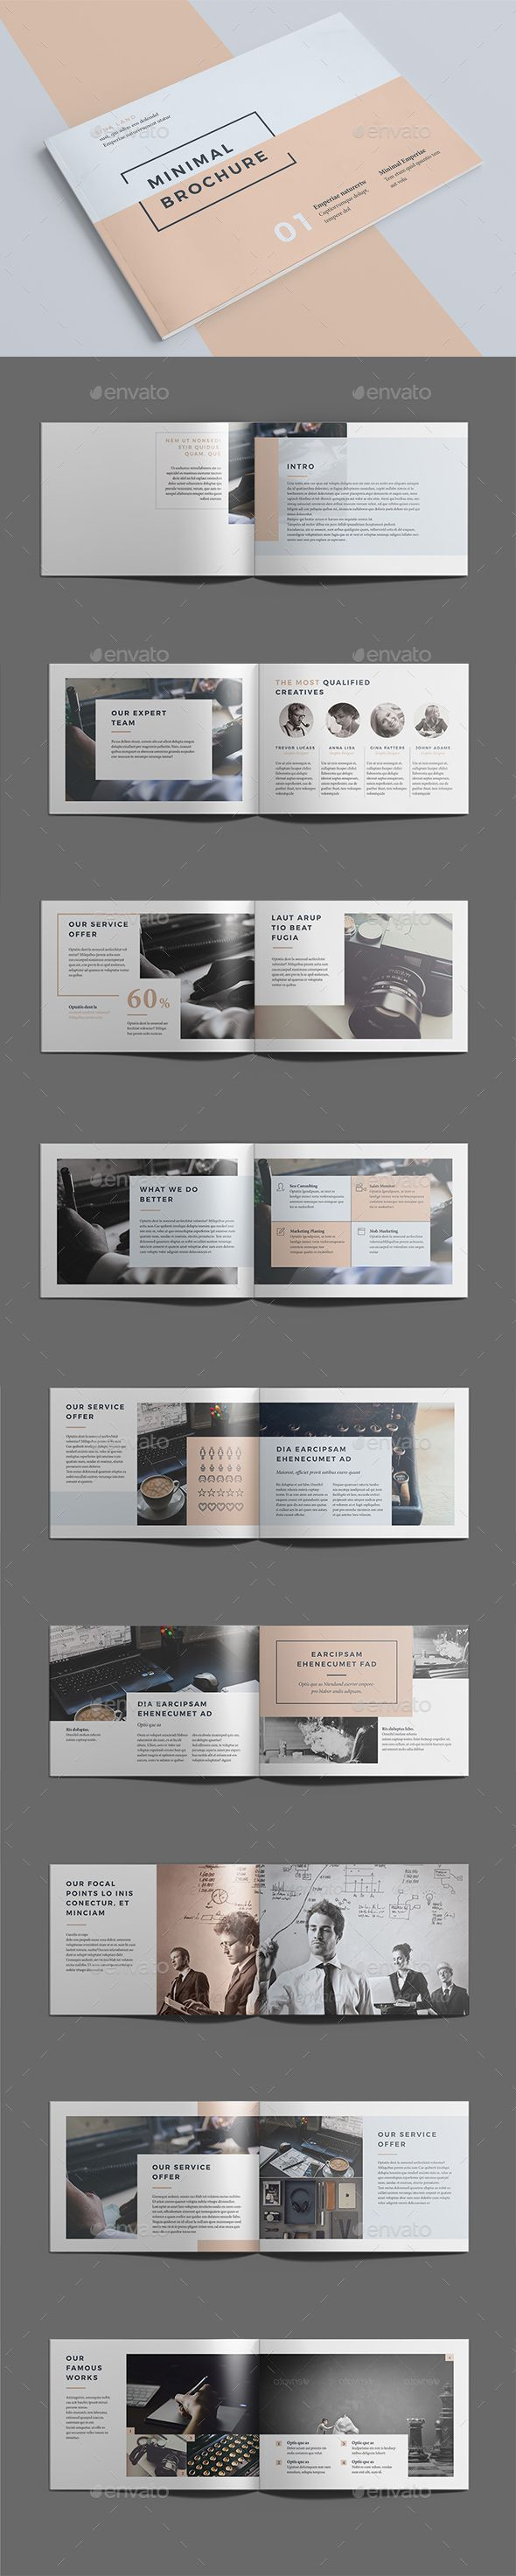 magazine page layouts - Booklet Design Ideas